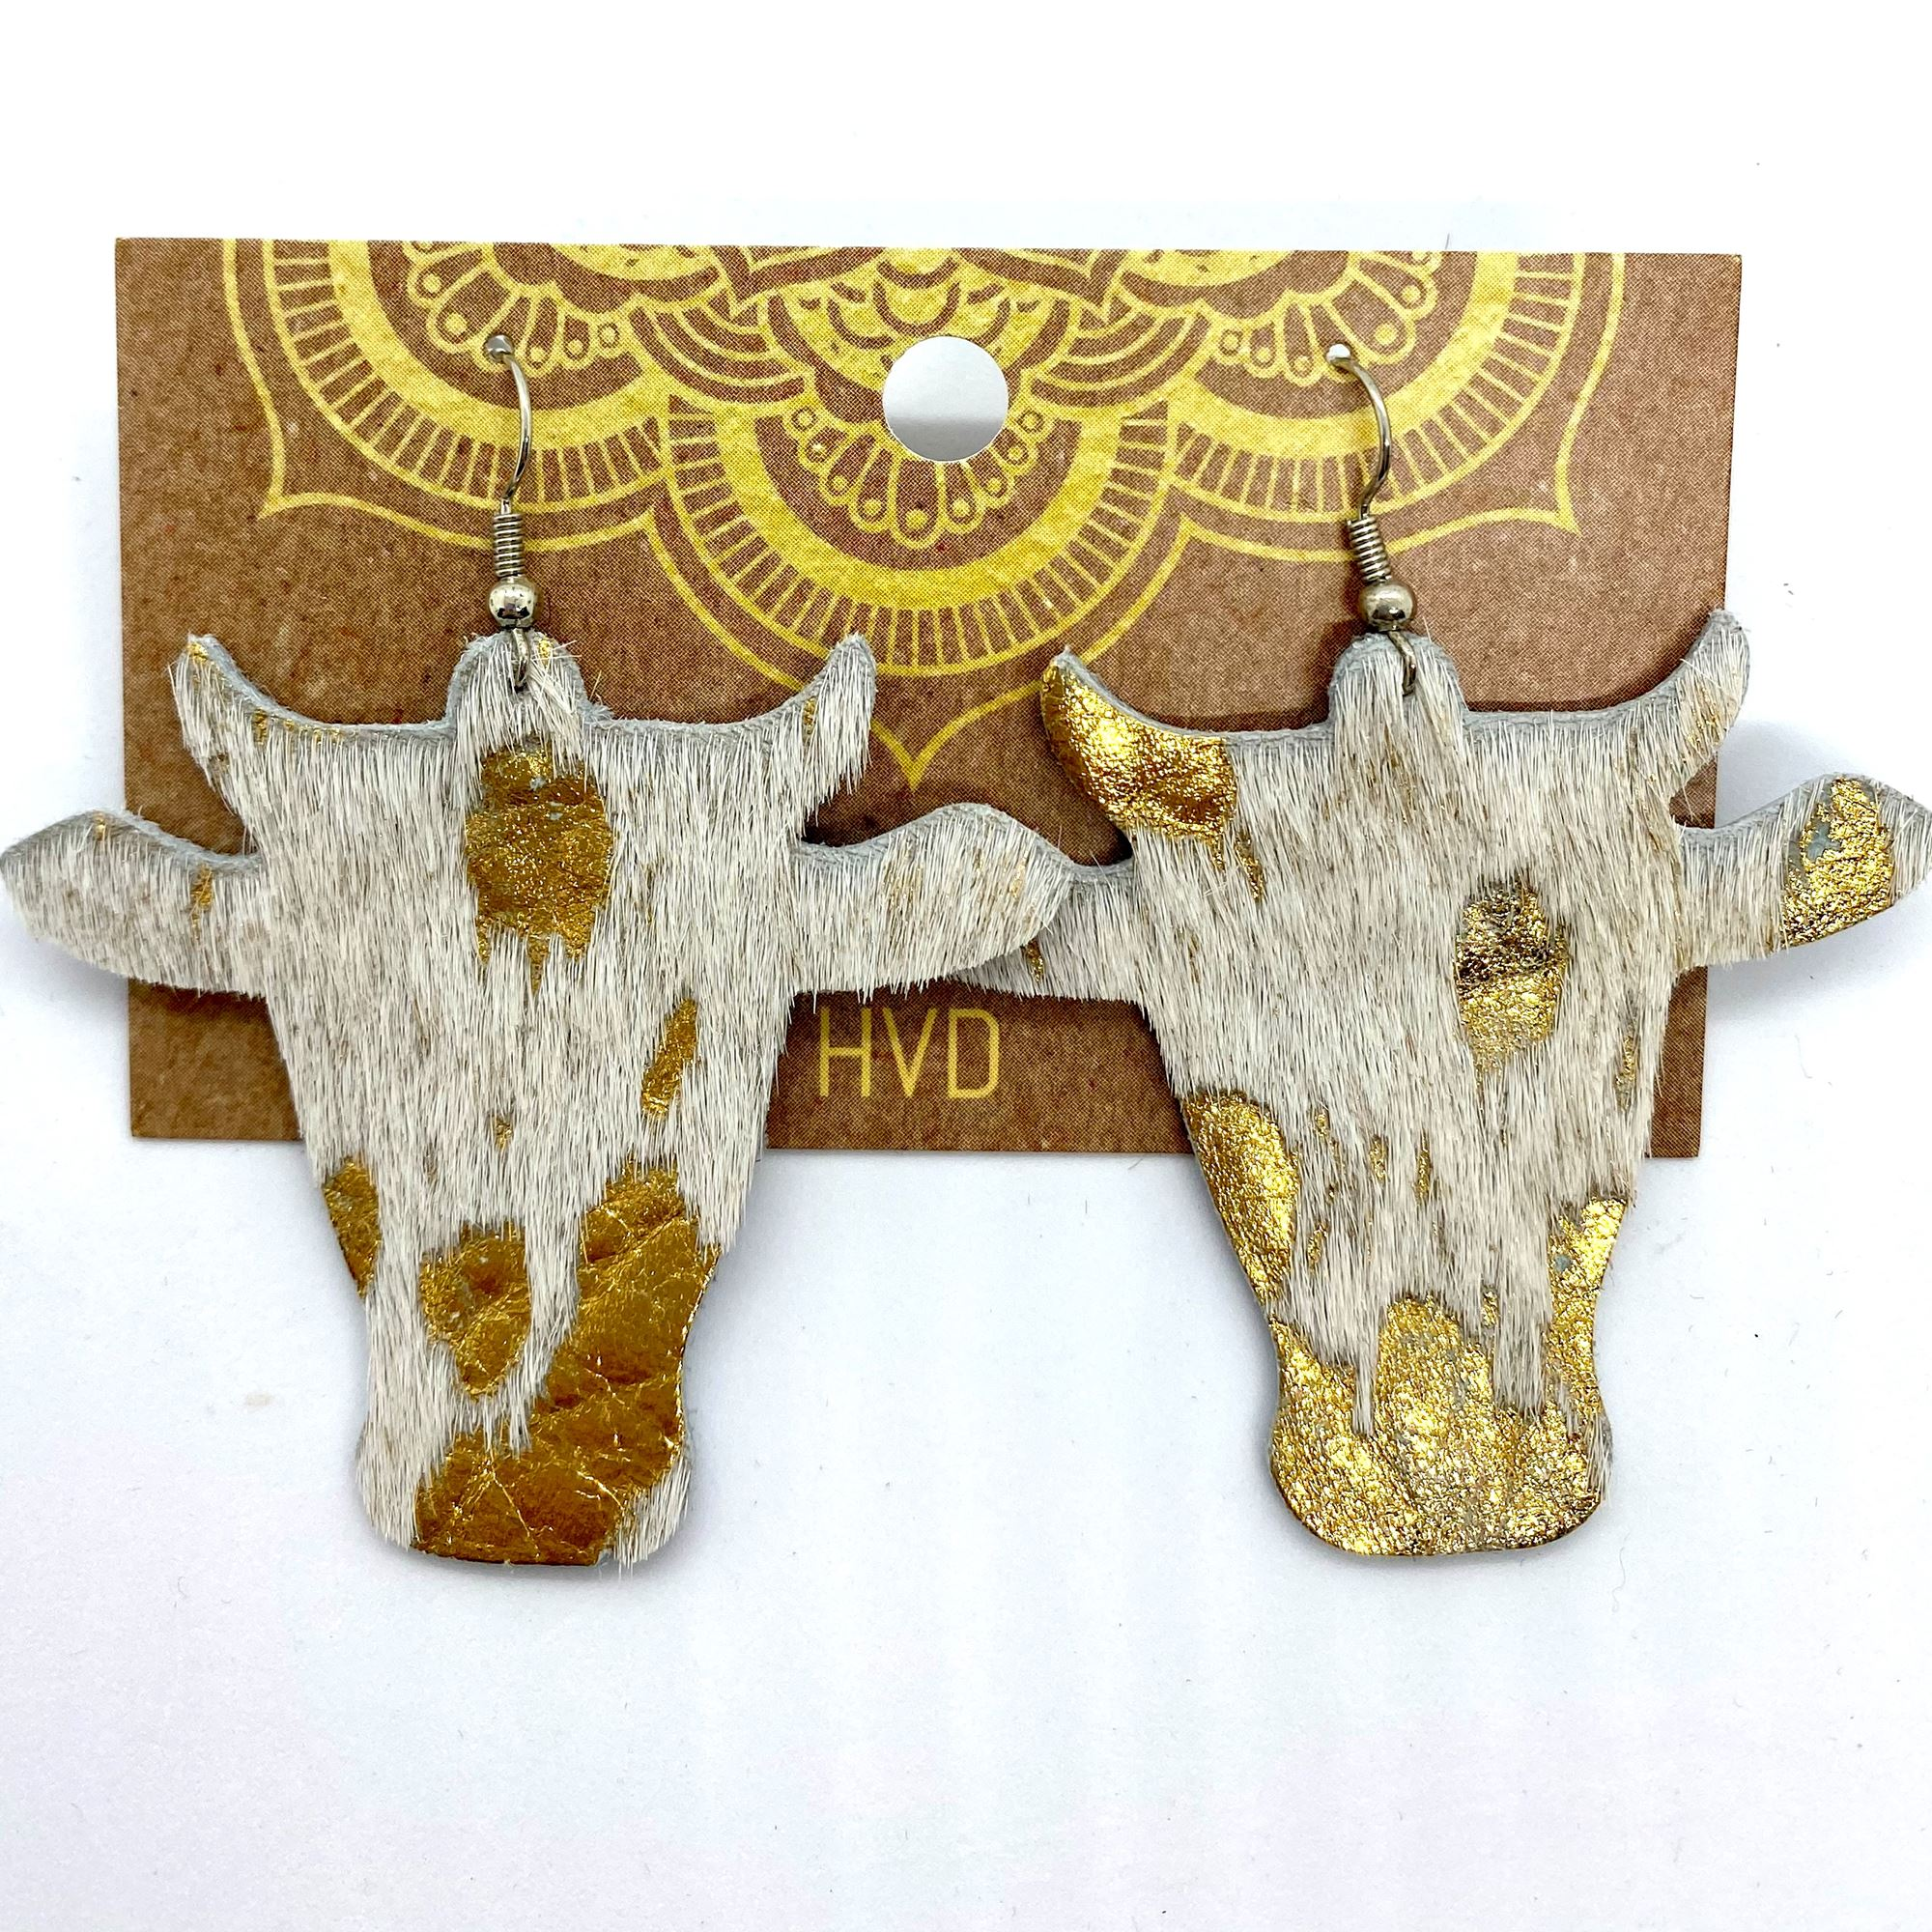 Cream with Gold Foil Hair-On-Hide Cow Head Earrings (2)